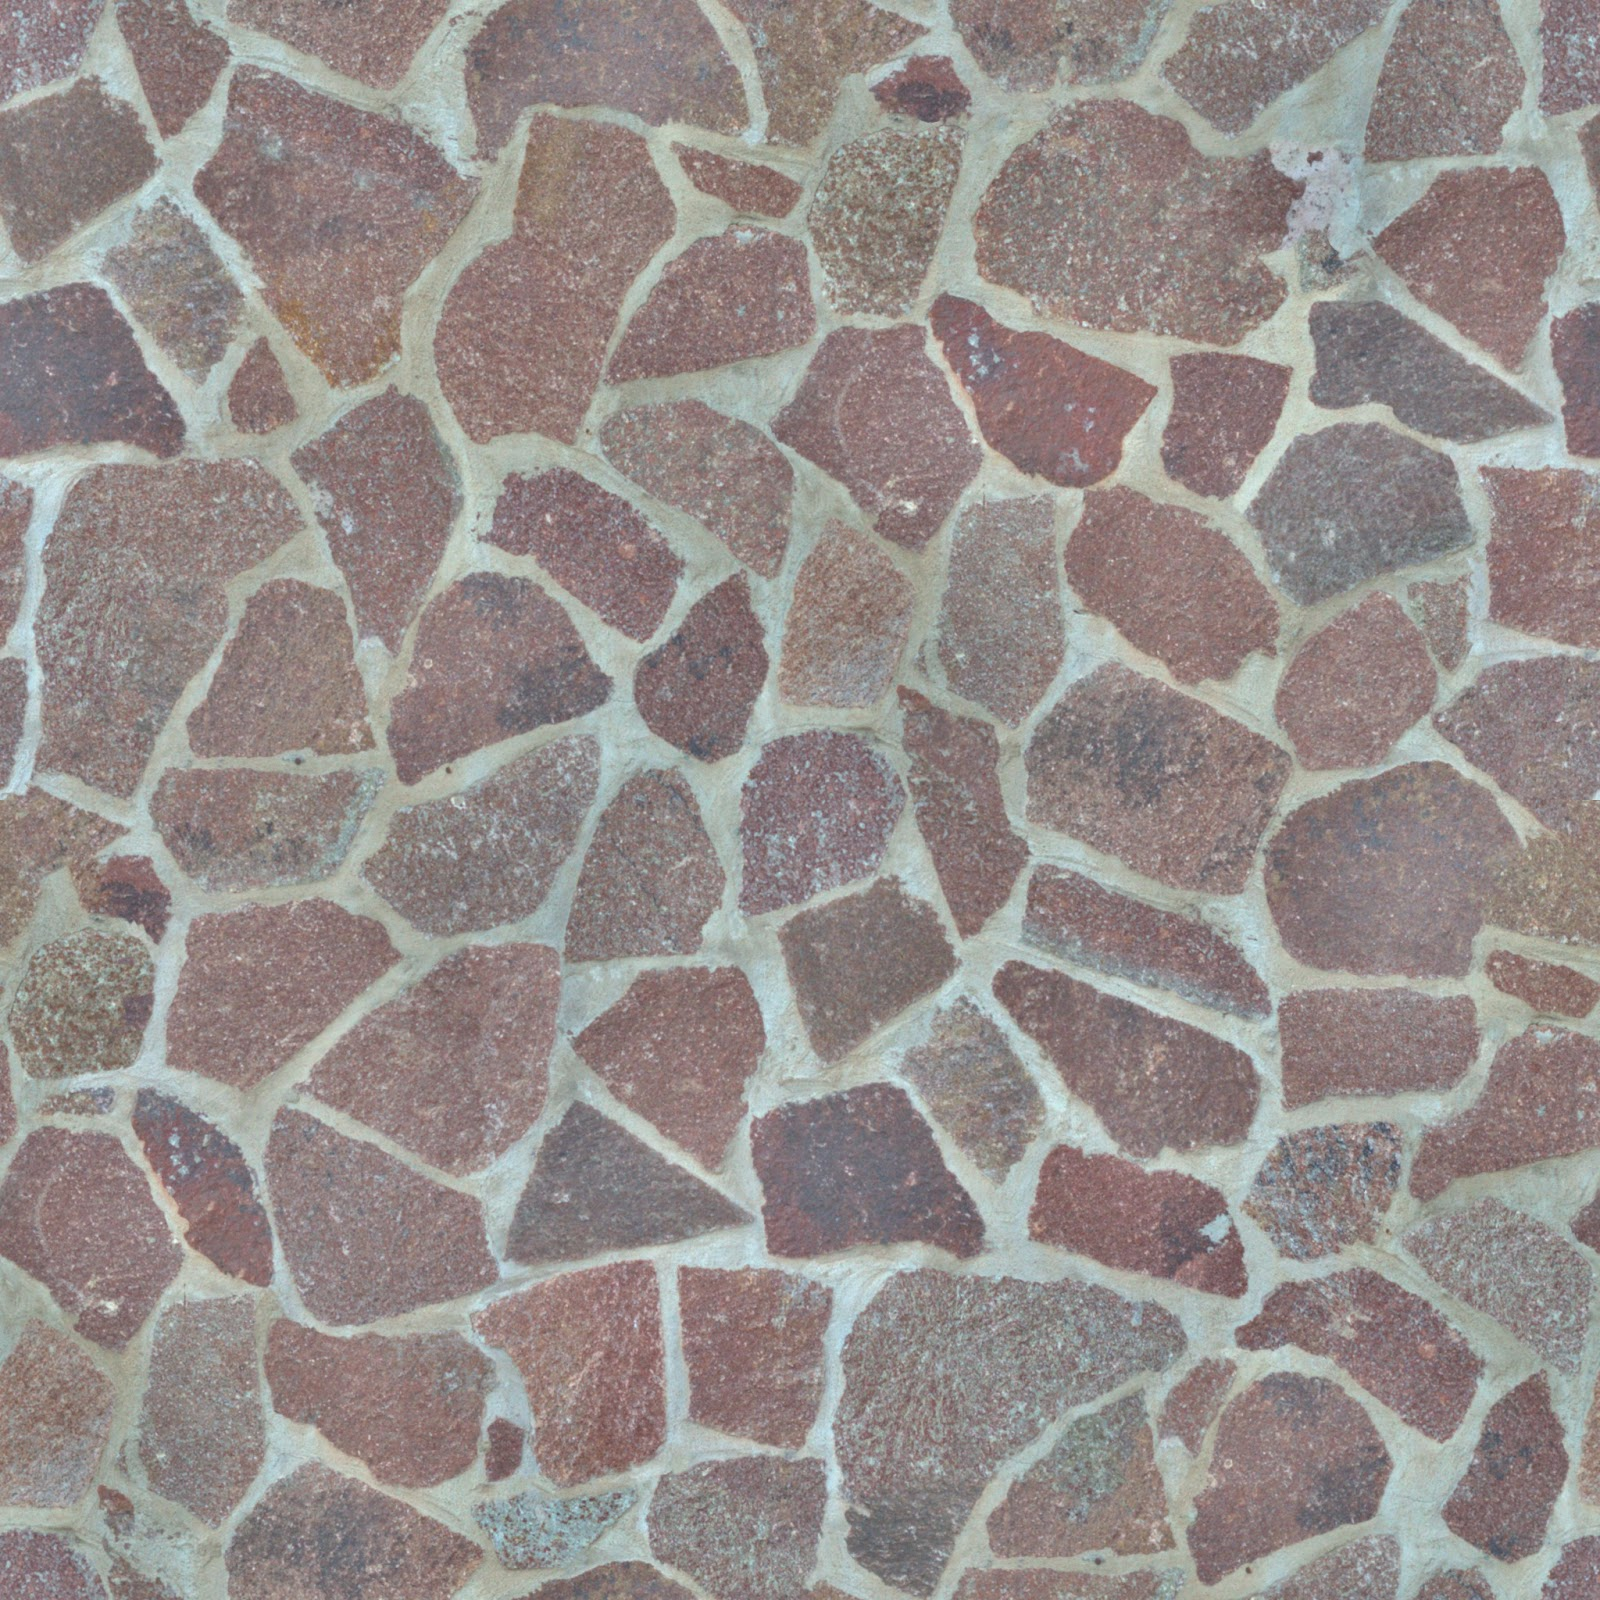 High resolution seamless textures stone giraffe floor tiles texture 4770x3178 - Textuur tiling ...